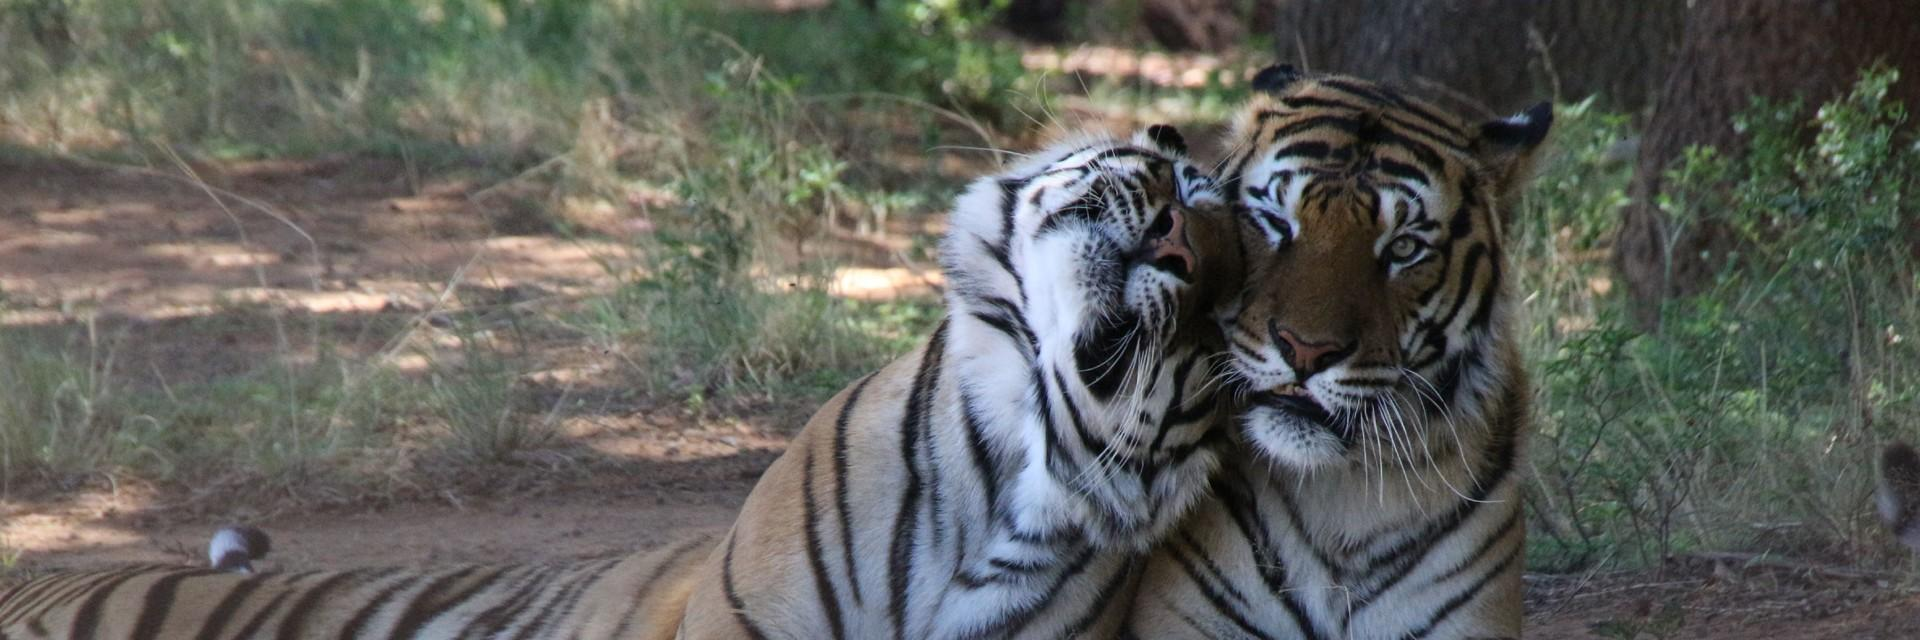 Rescued tigers in LIONSROCK